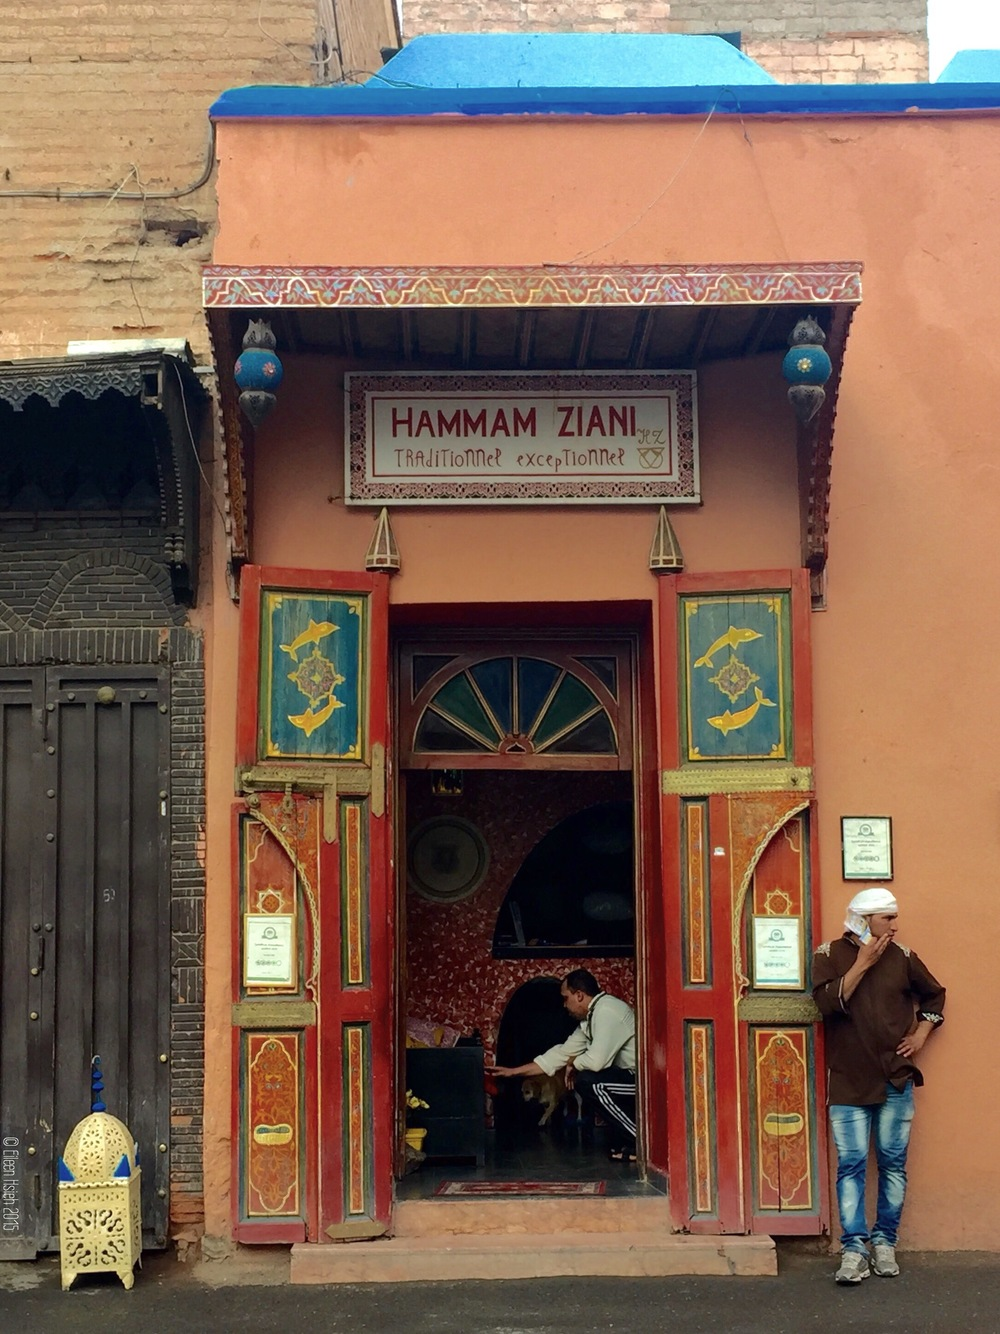 Entrance of a traditional Moroccan hammam bath house, where you can get the most thorough body scrub and come out shiny and new. 摩洛哥 傳統 澡堂的入口,進去被刮掉一層皮後(其實是汙垢啦),保證出來全身亮晶晶。